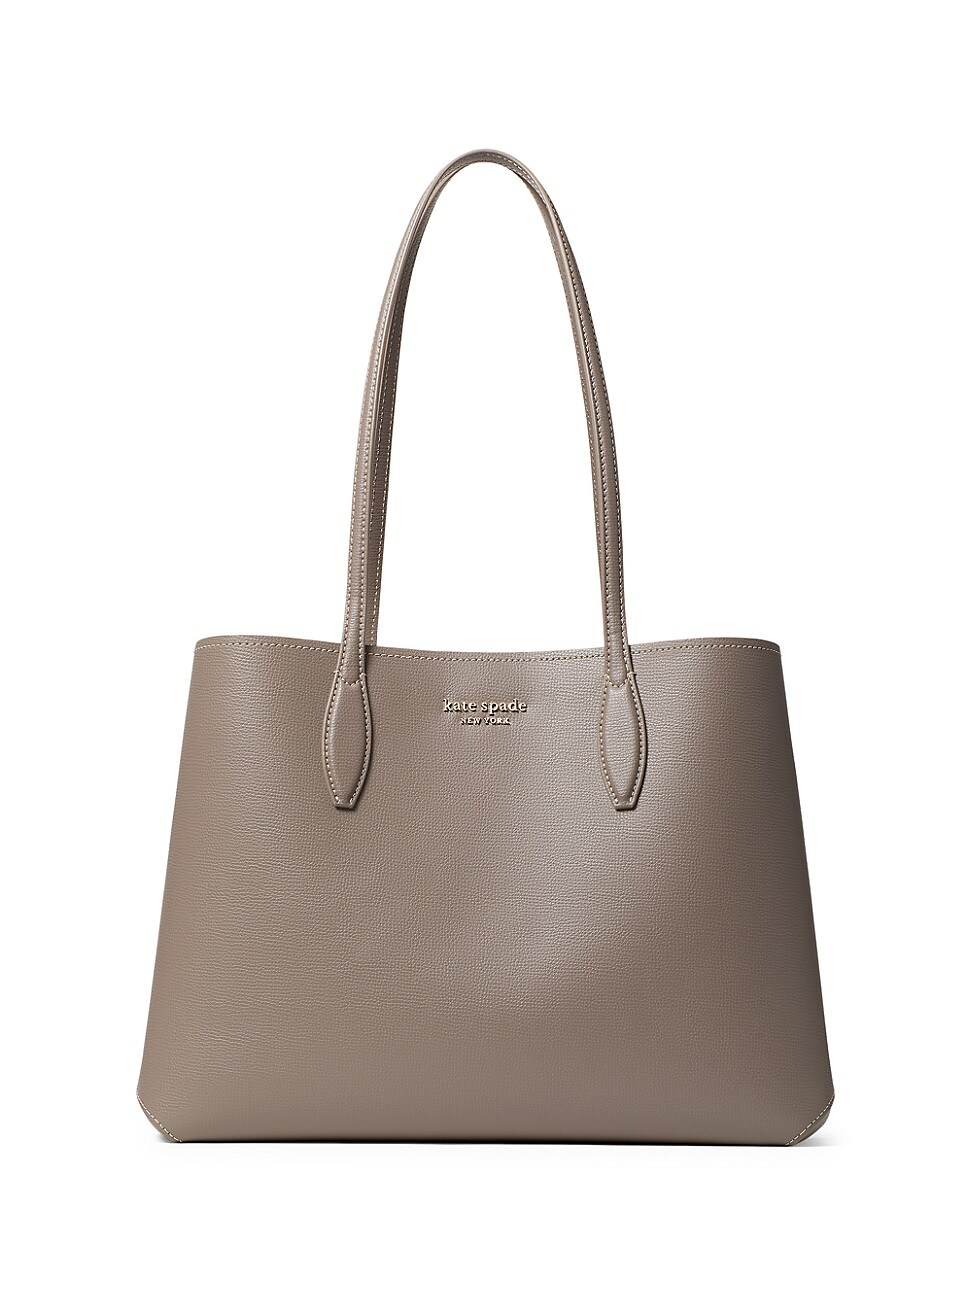 Kate Spade WOMEN'S LARGE ALL DAY LEATHER TOTE - MINERAL GREEN